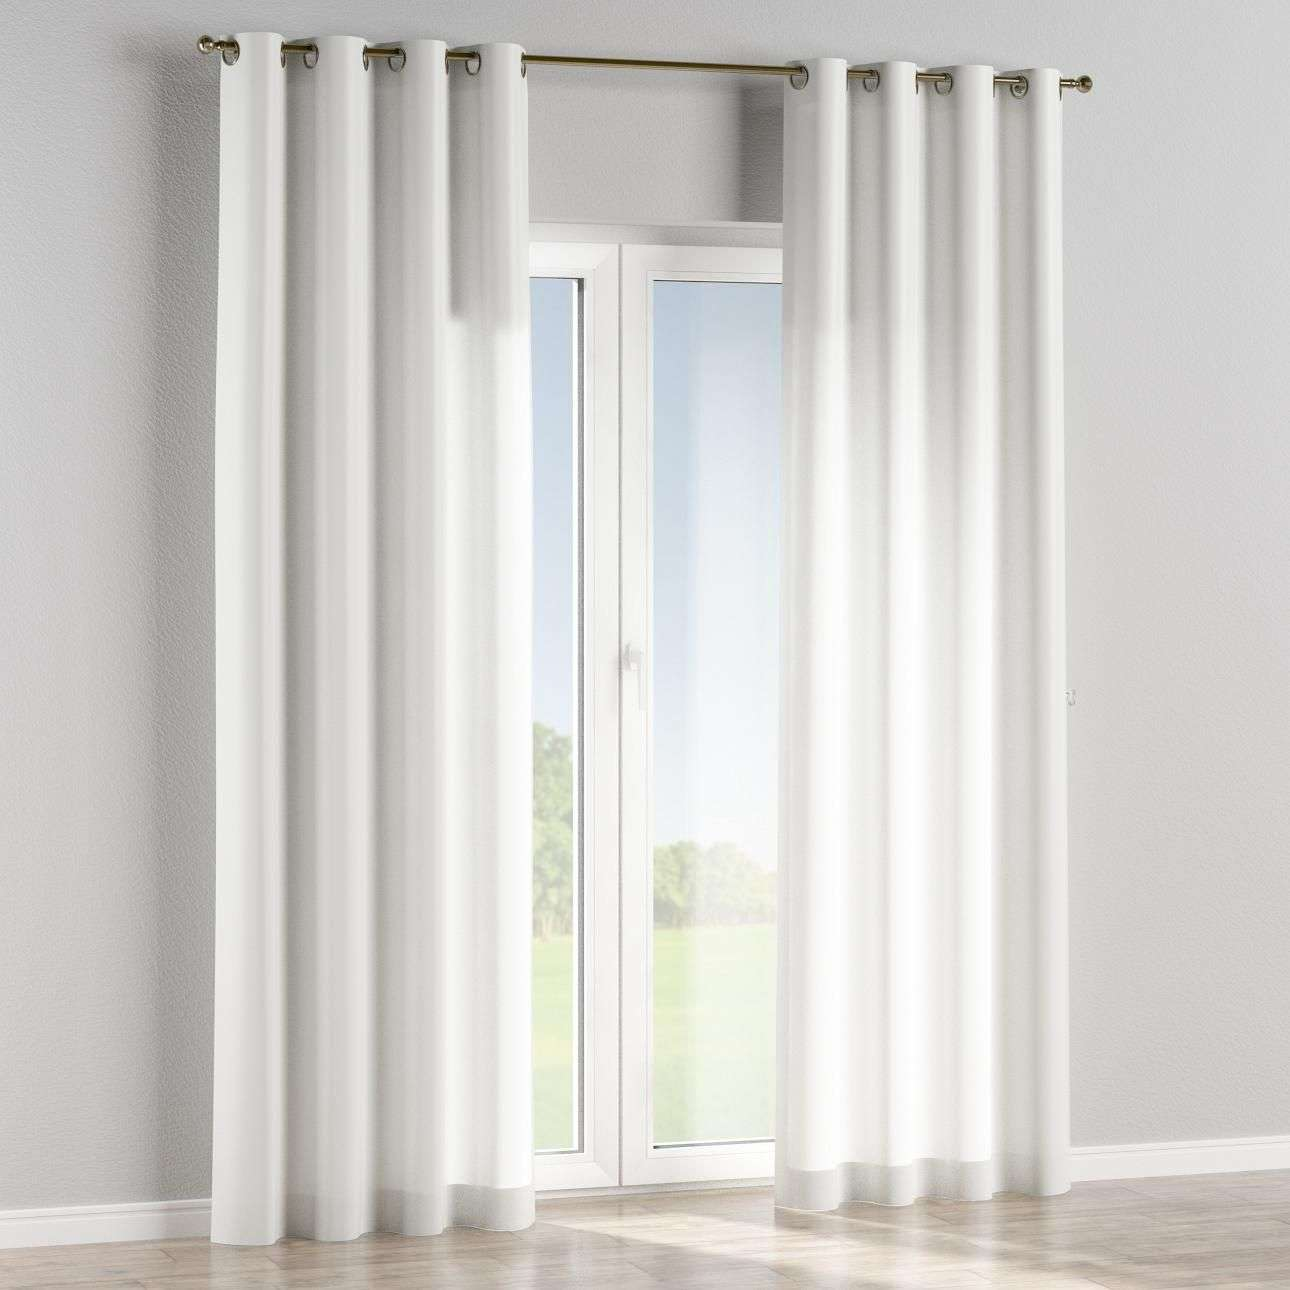 Eyelet curtains in collection Bristol, fabric: 126-48